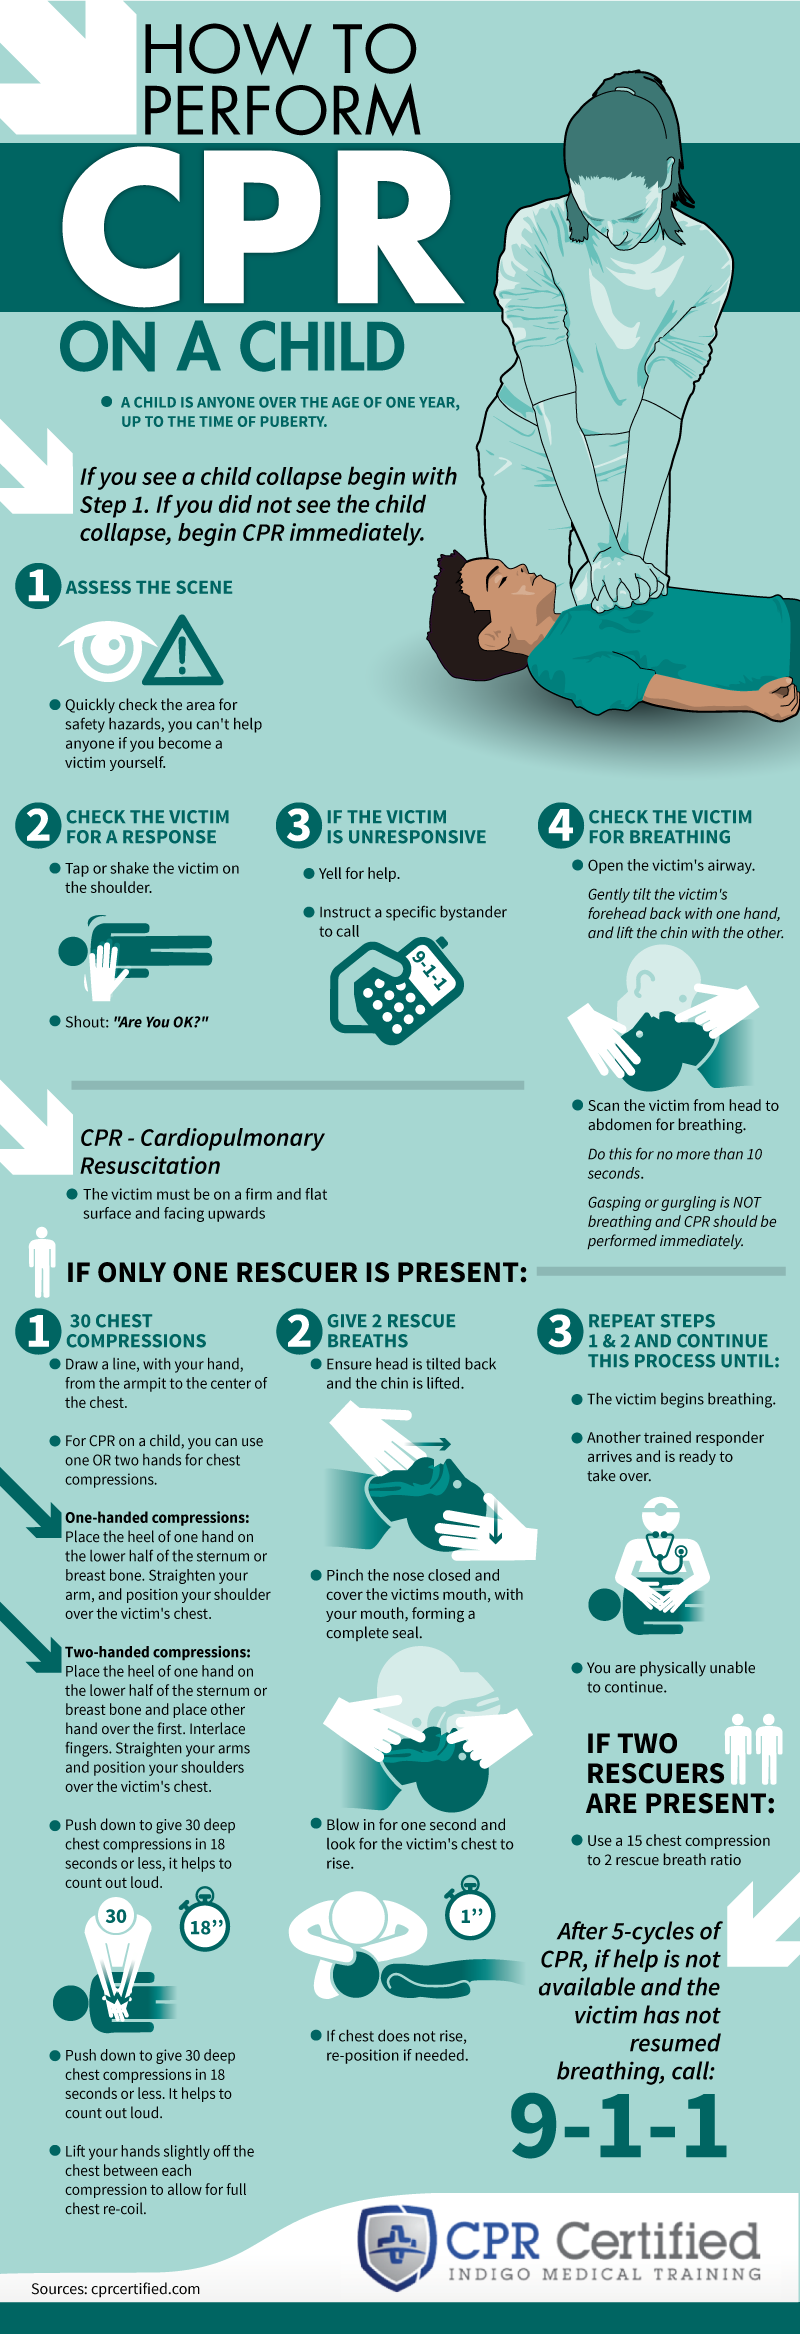 Best 25 cpr renewal ideas on pinterest cpr training best 25 cpr renewal ideas on pinterest cpr training cardiopulmonary resuscitation and how to perform cpr xflitez Image collections